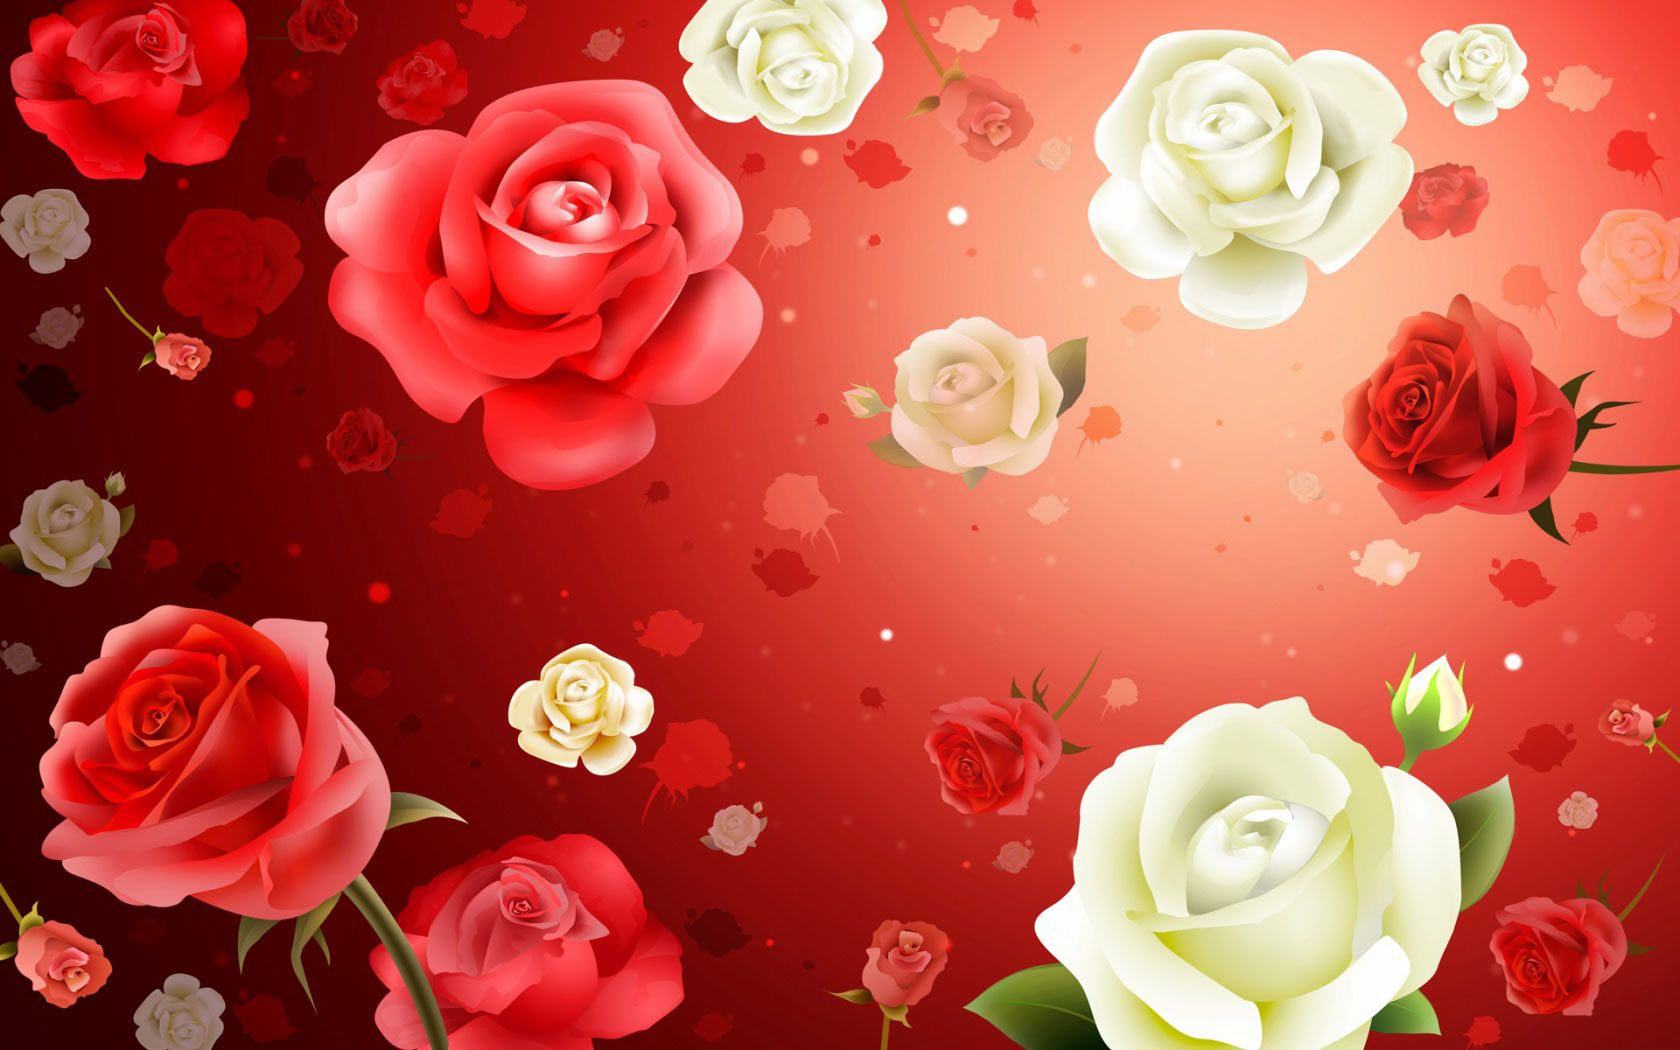 Hd for desktop nice rose mobile wallpapers 3d rose wallpaper free - Roses Flowers Backgrounds Windows 7 Desktop Wallpaper High Quality Wallpapers Wallpaper Desktop High